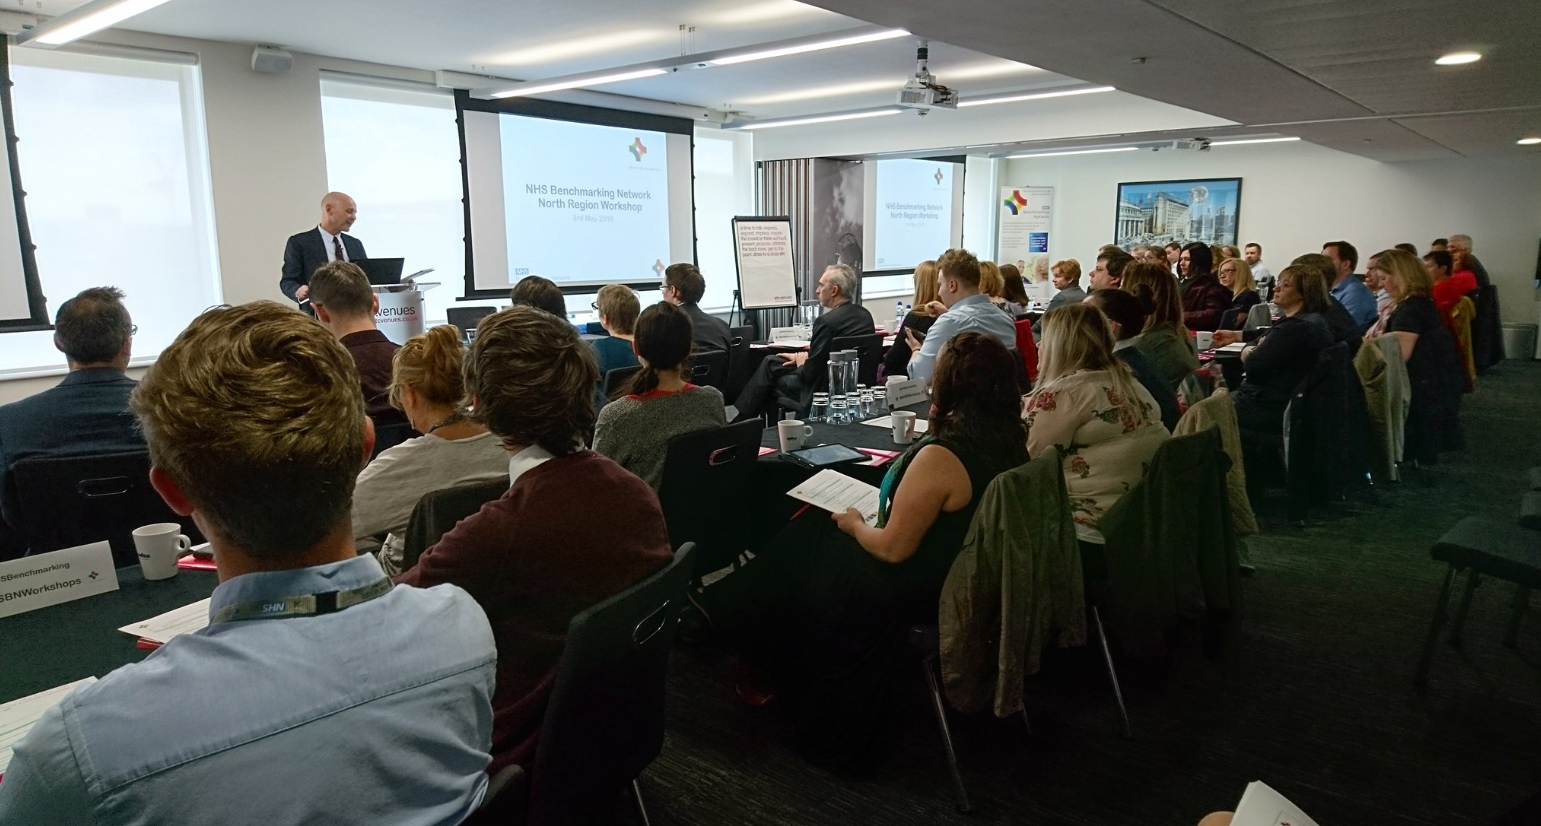 """North Regional Event, 3rd May 2018  """"It was great to have an event up North. Brilliant opportunity to meet members of NHS Benchmarking Network Team. Loved the workshop…and all presentations were clear and informative. Fab opportunity to discuss daily pressures and obtain an understanding of what is happening elsewhere."""""""